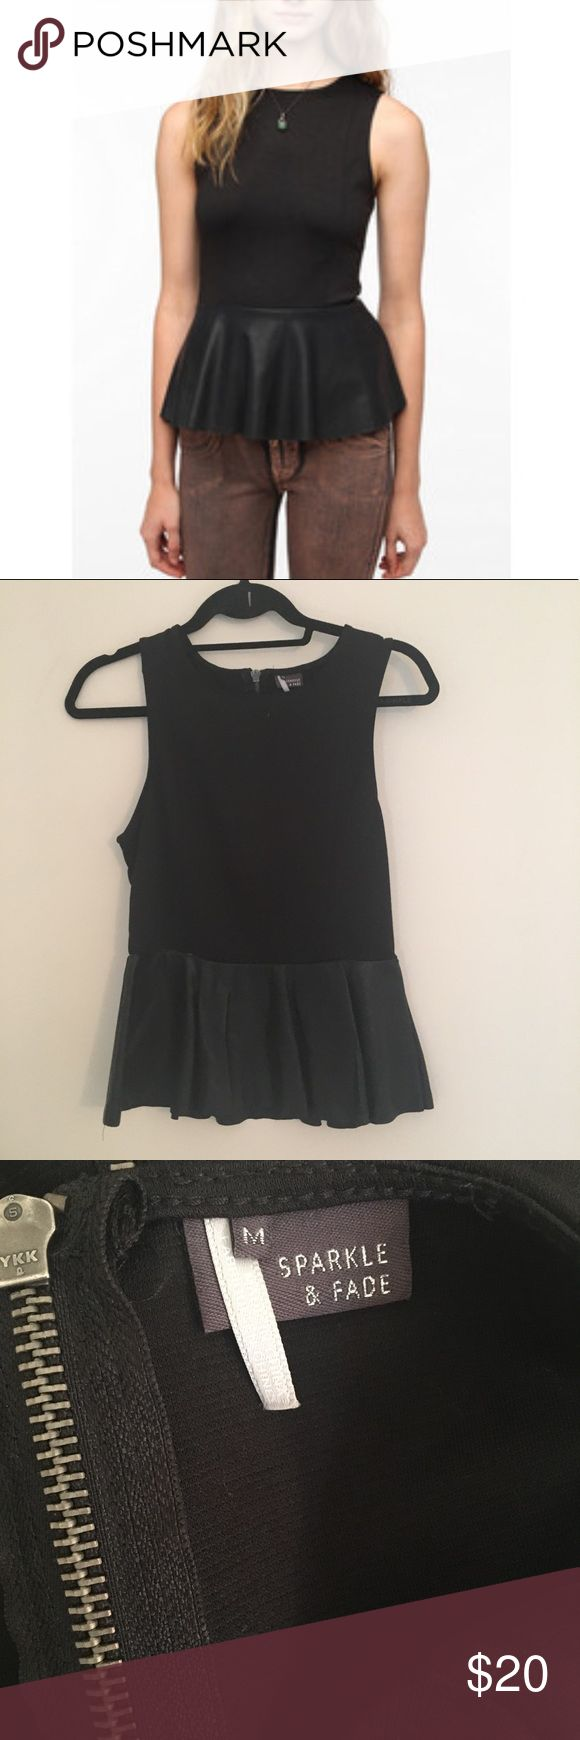 Sparkle & Fade Faux Leather Peplum Top Size medium. Super cute and great condition. Urban Outfitters Tops Tank Tops